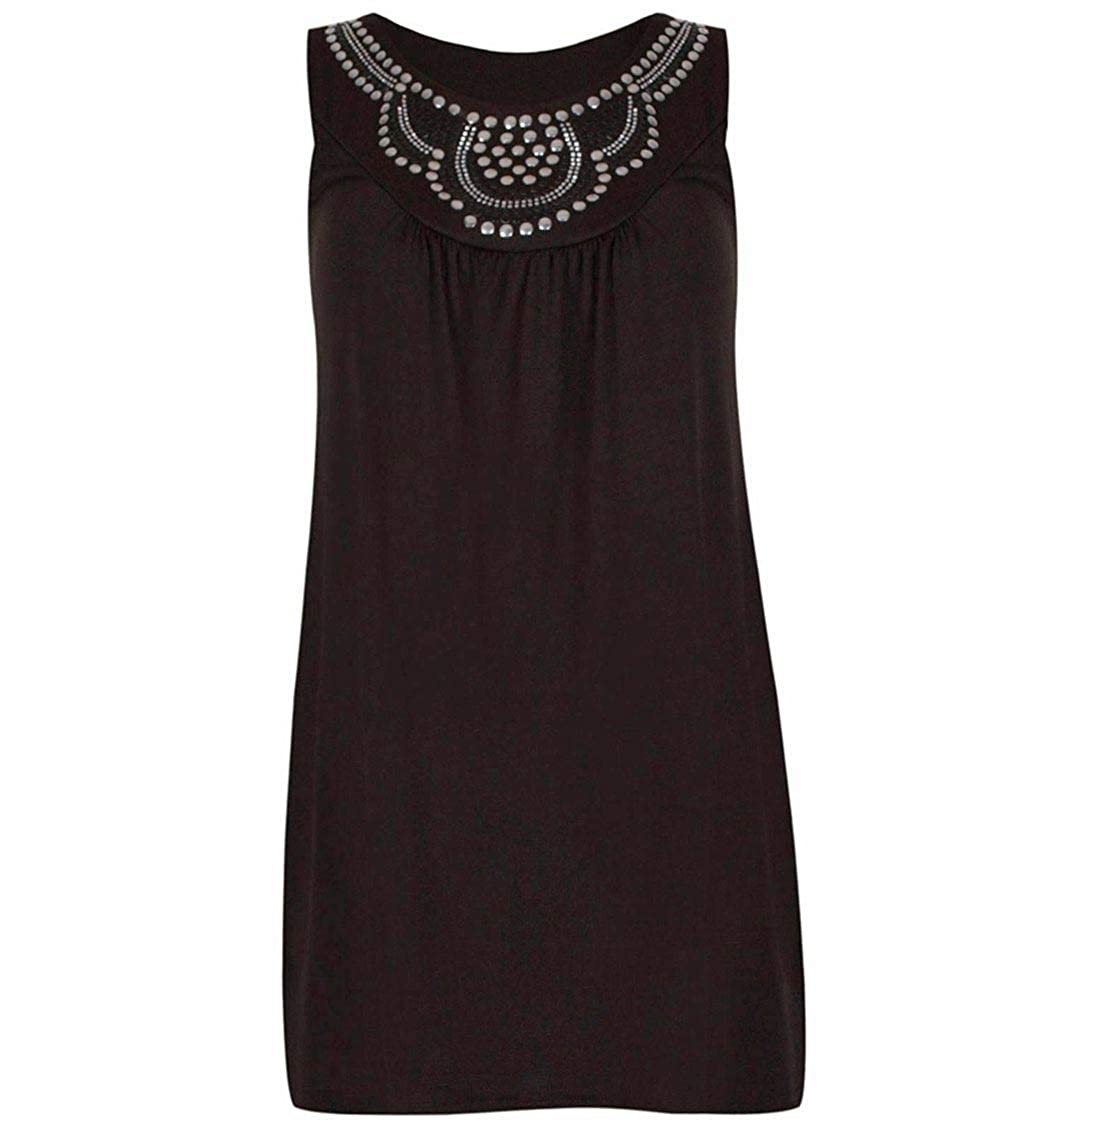 MA ONLINE Ladies Beaded Stud Flared Plus Size Tunic Top Womens Party Wear Sleeveless Long Vest Top US 10-24